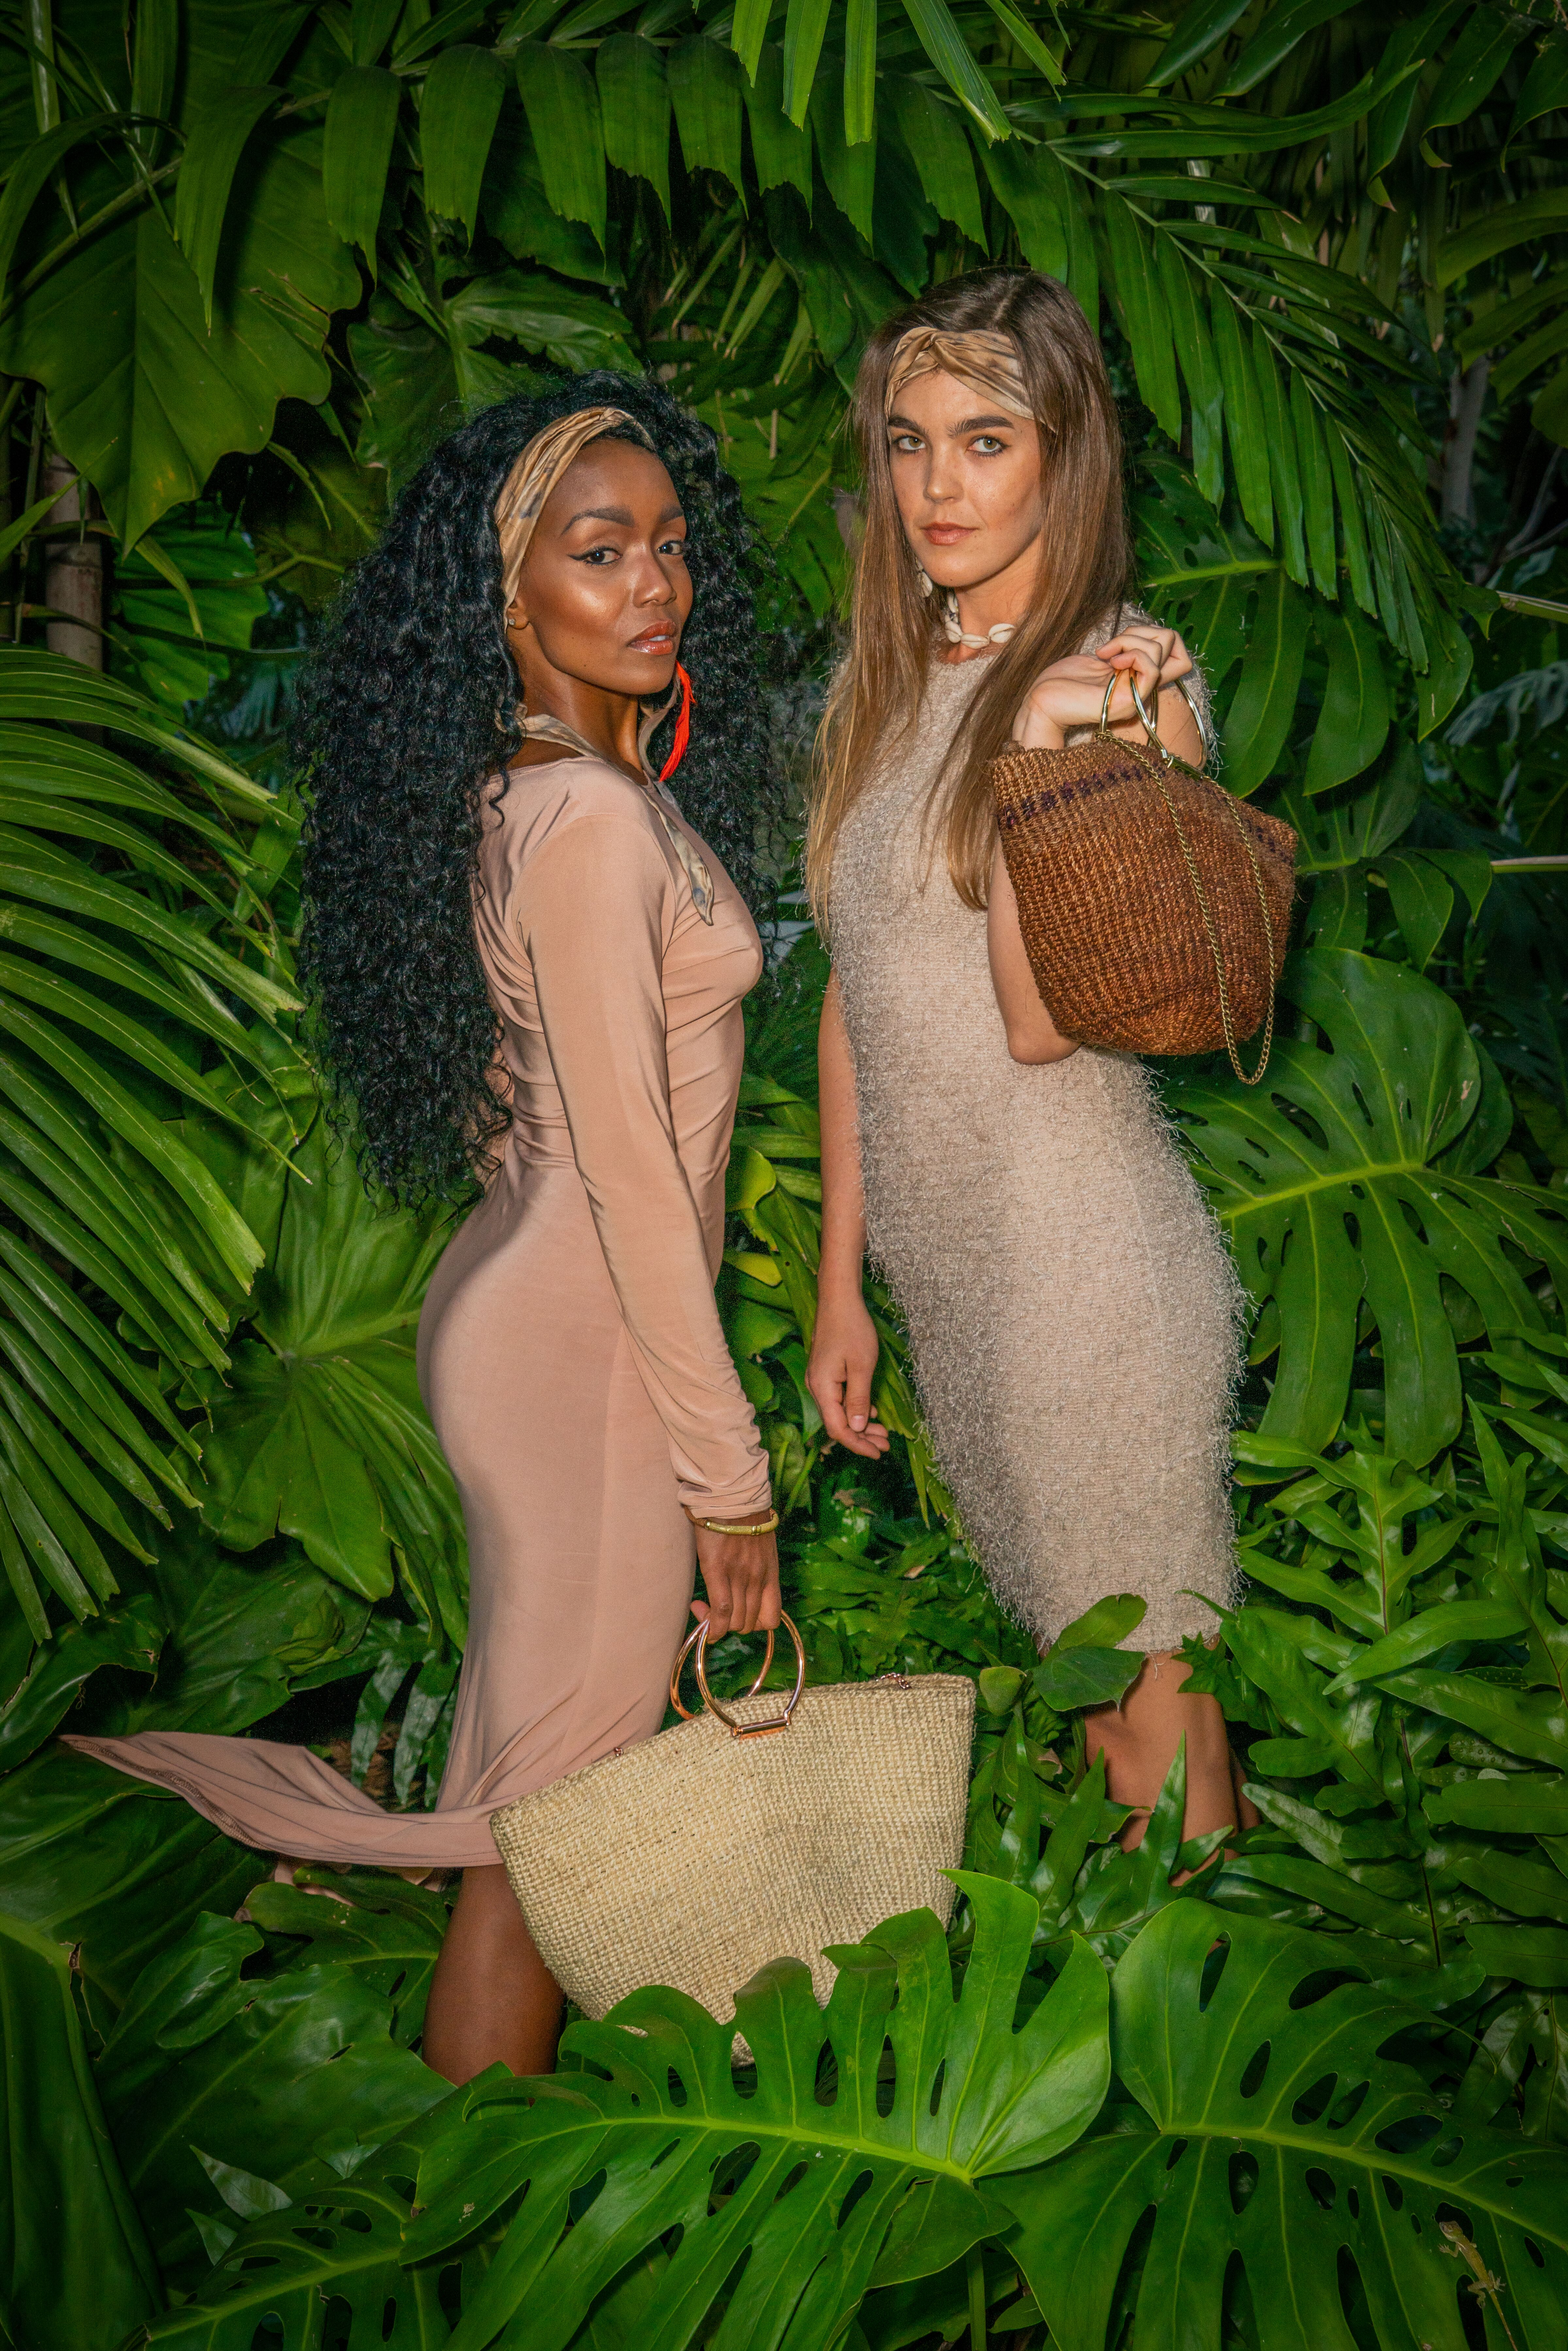 Vicky and Sanna in Miami showing bags